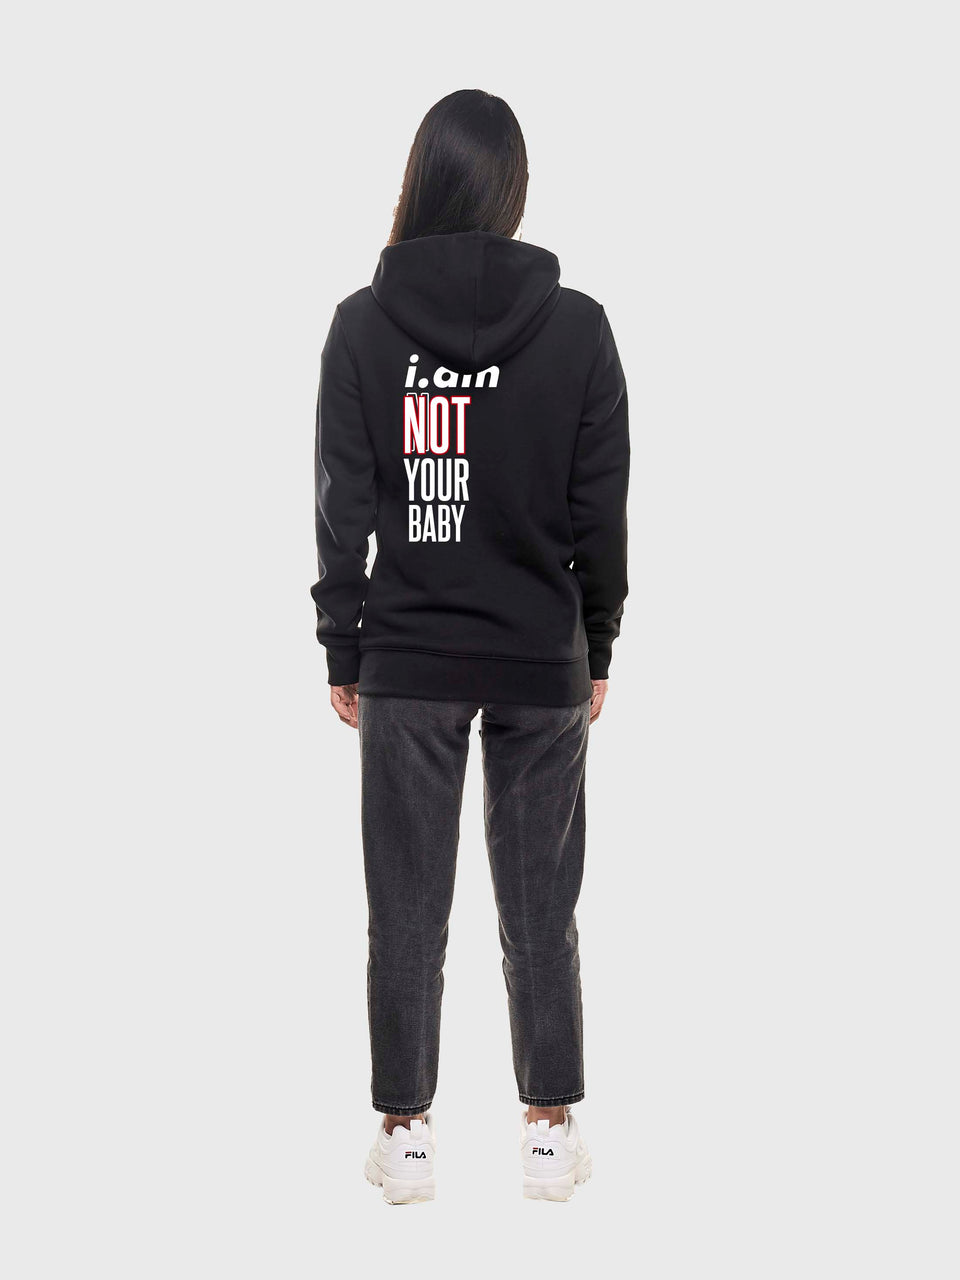 Not your baby - Black - unisex pull over hoodie